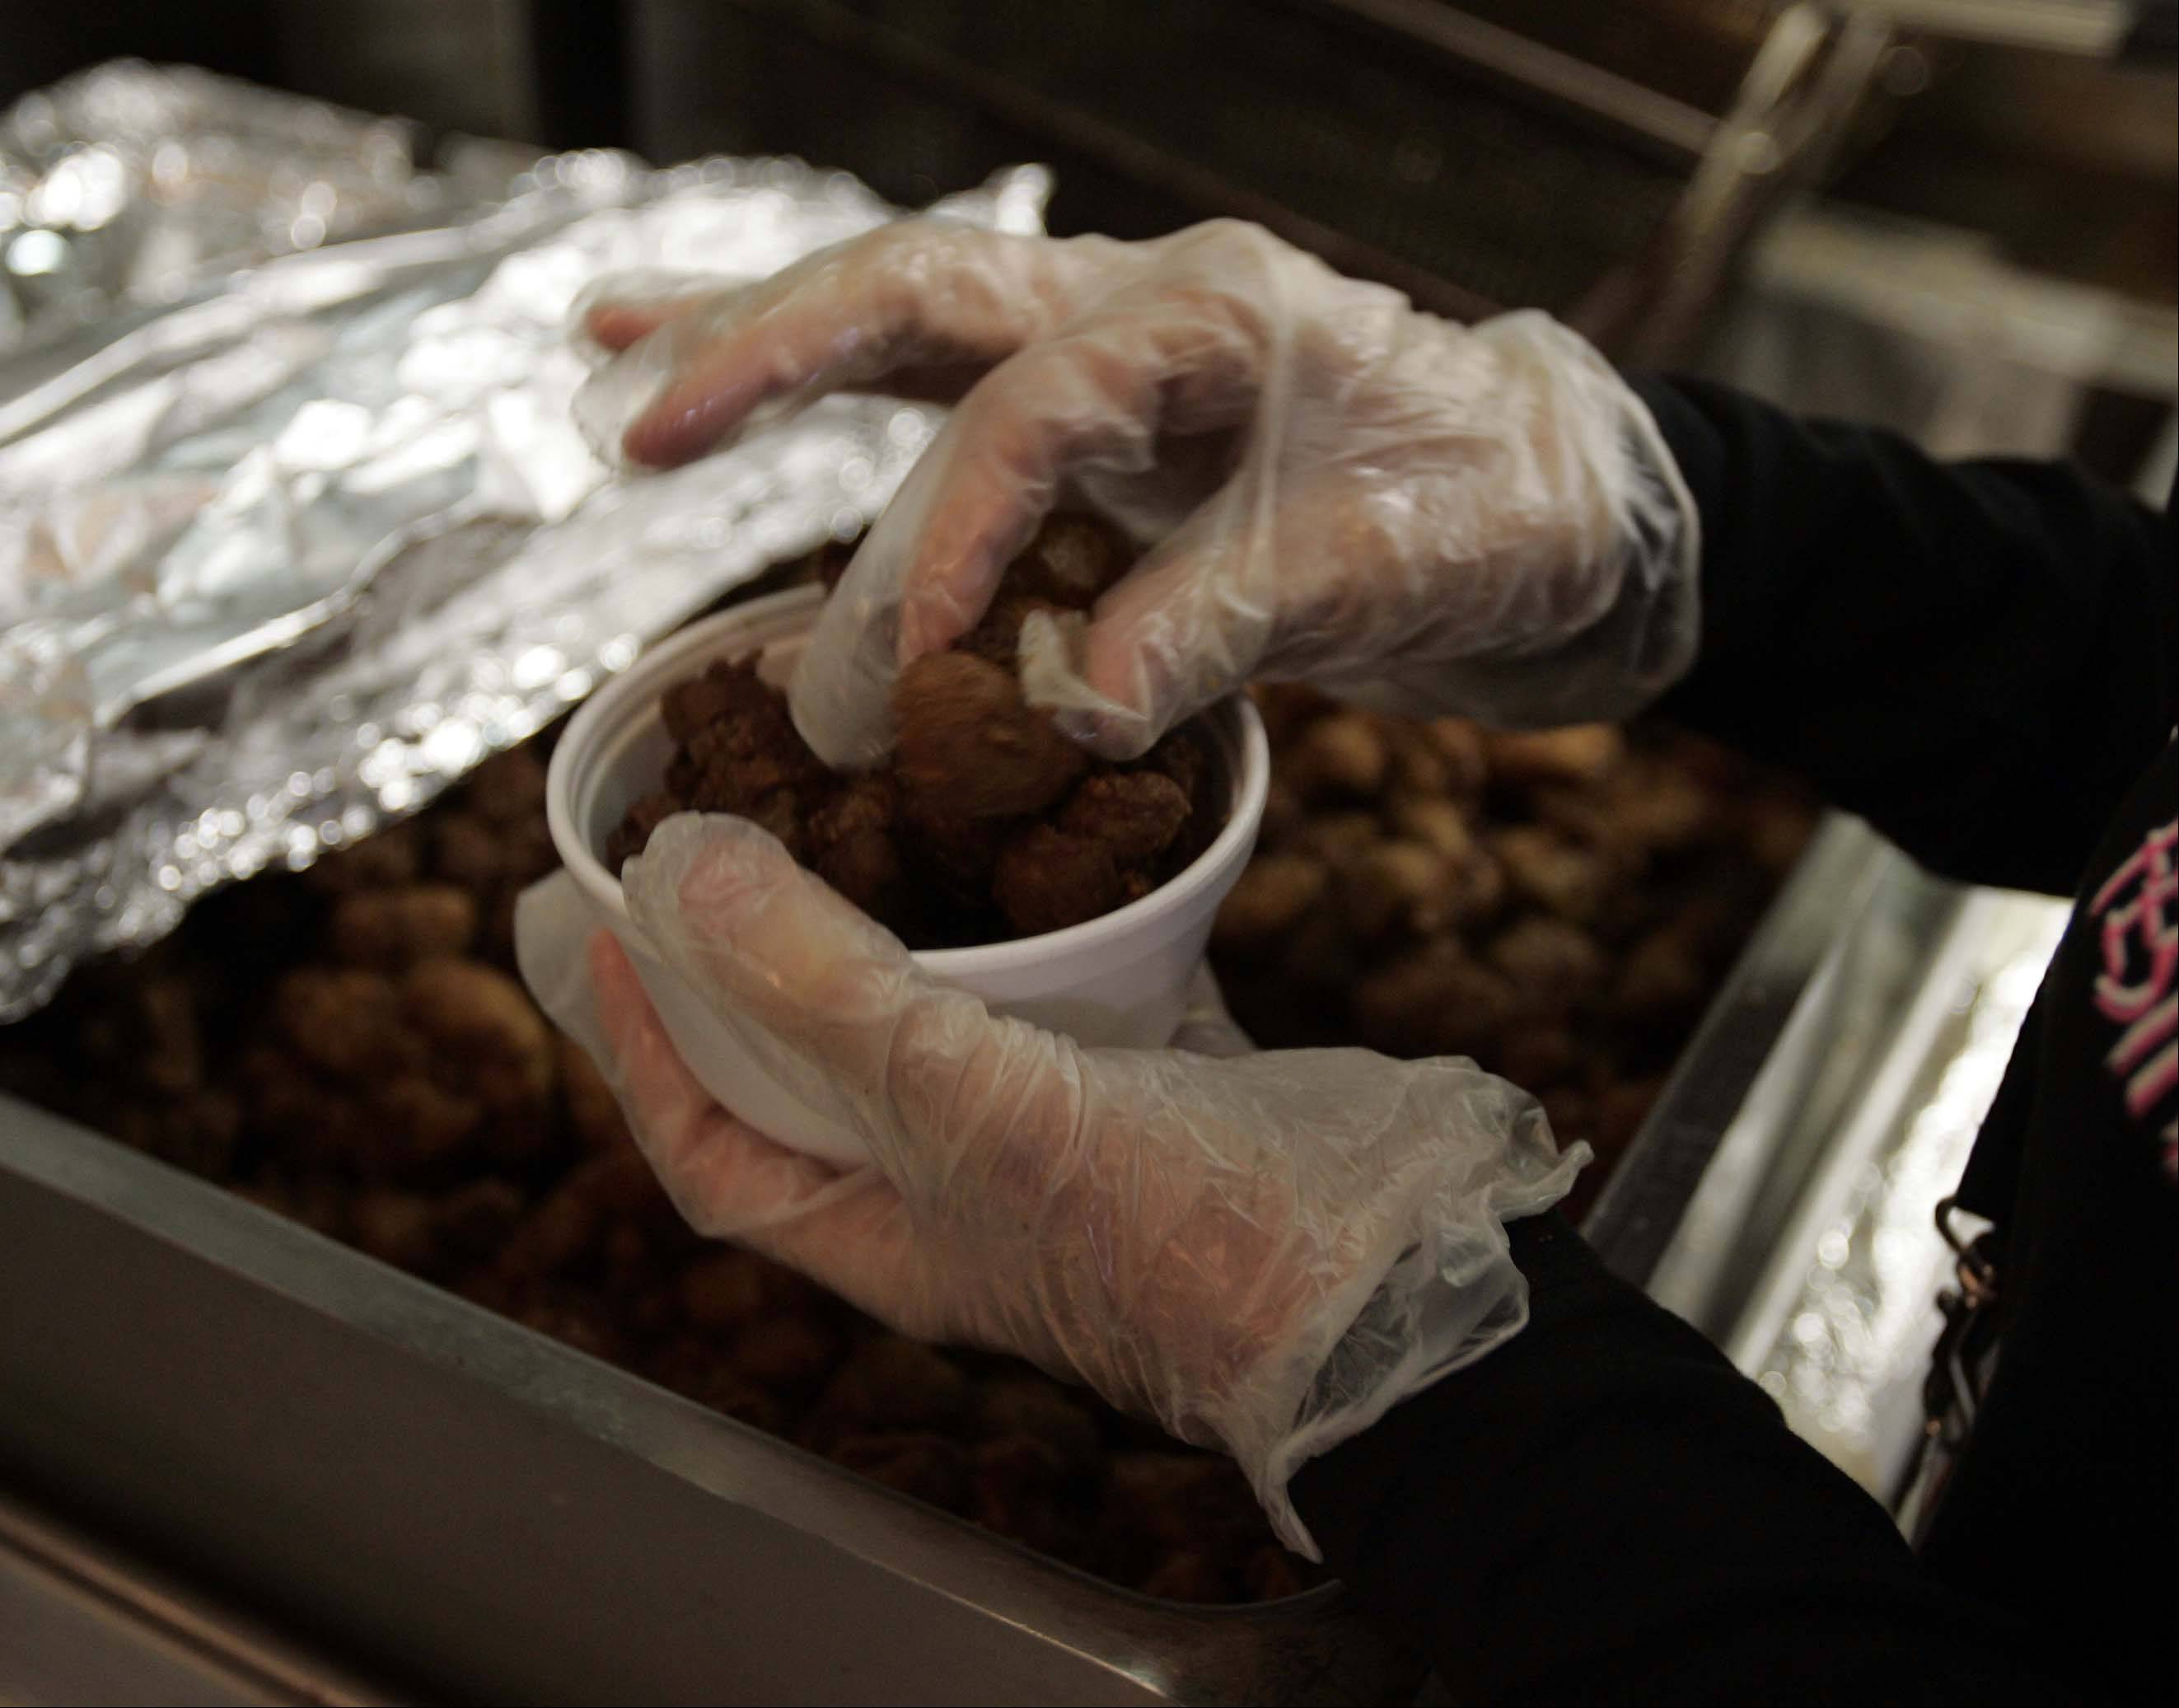 A Parkside Pub employee prepares a bowl of freshly fried turkey testicles.